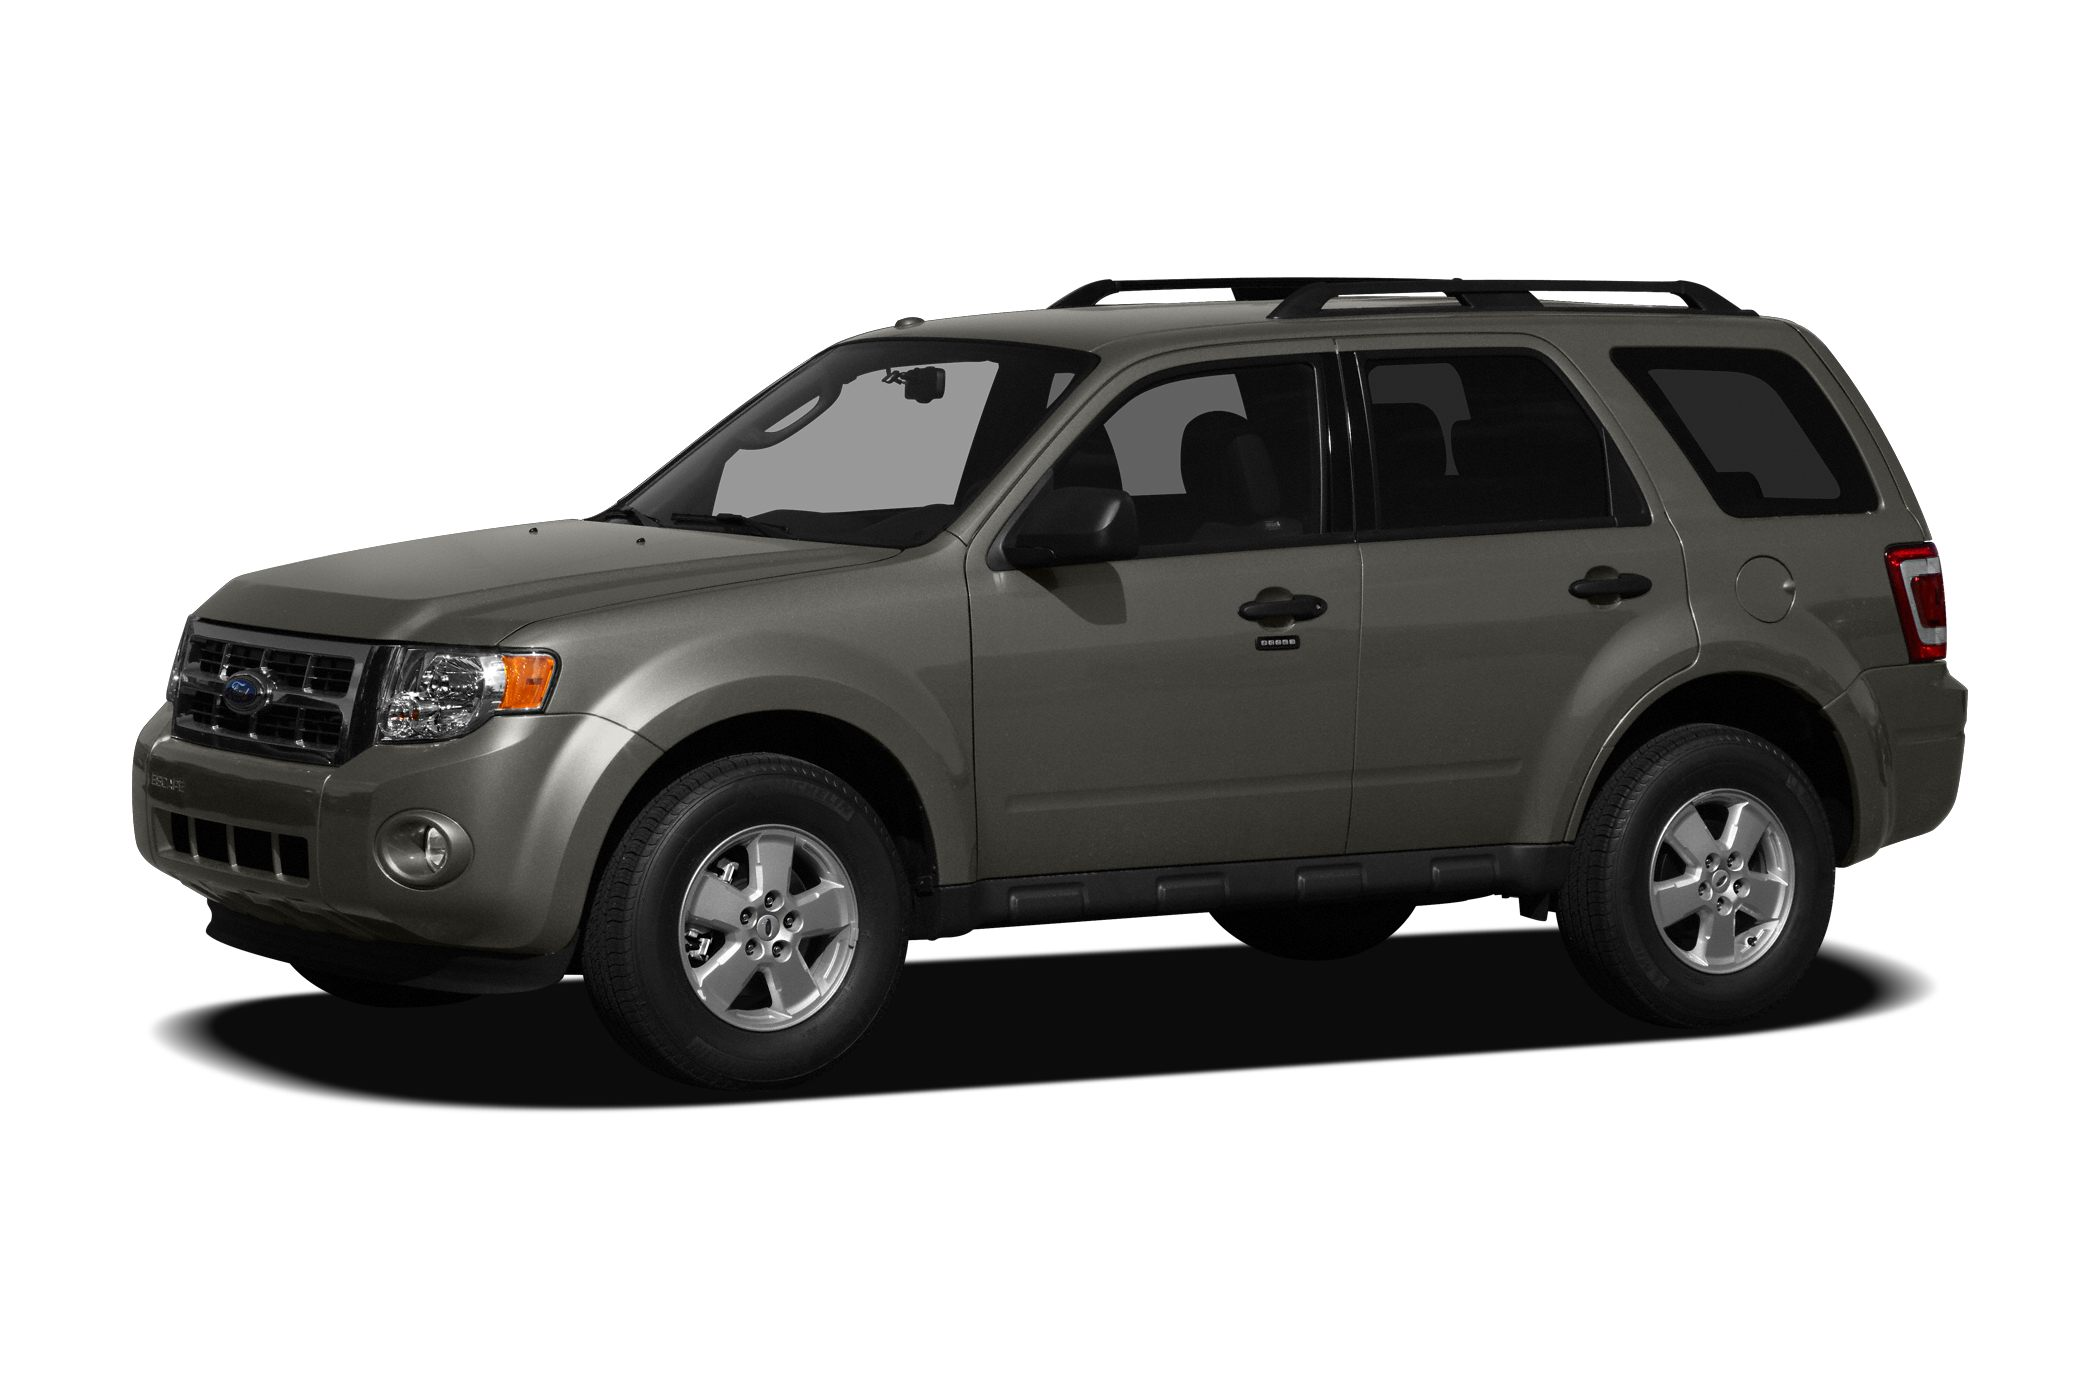 2009 Ford Escape Recalls